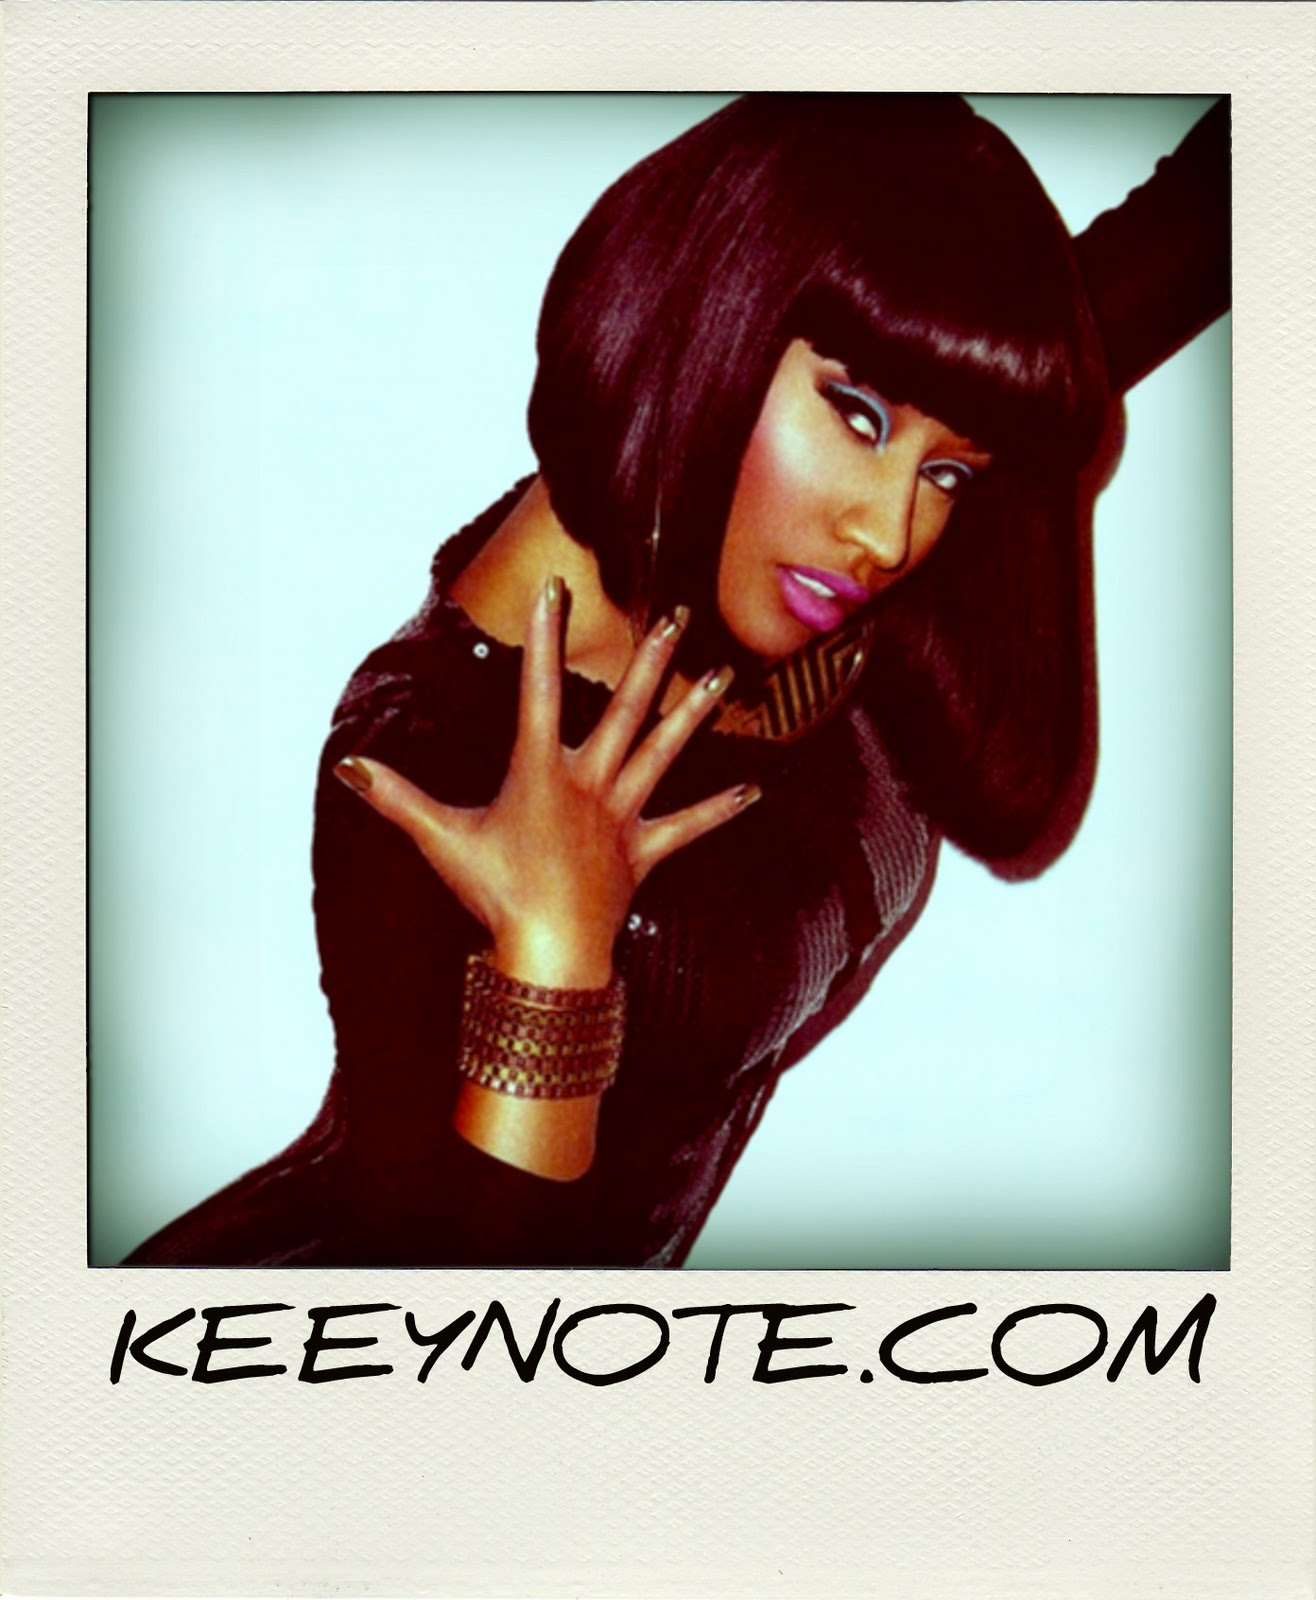 http://1.bp.blogspot.com/-yR84DXkwAxc/TtkLcr24rQI/AAAAAAAAEqo/4Arv8Ozj0z4/s1600/new-nicki-minaj-songs-break-billboard-top-songs-chart-records-2-pola.jpg